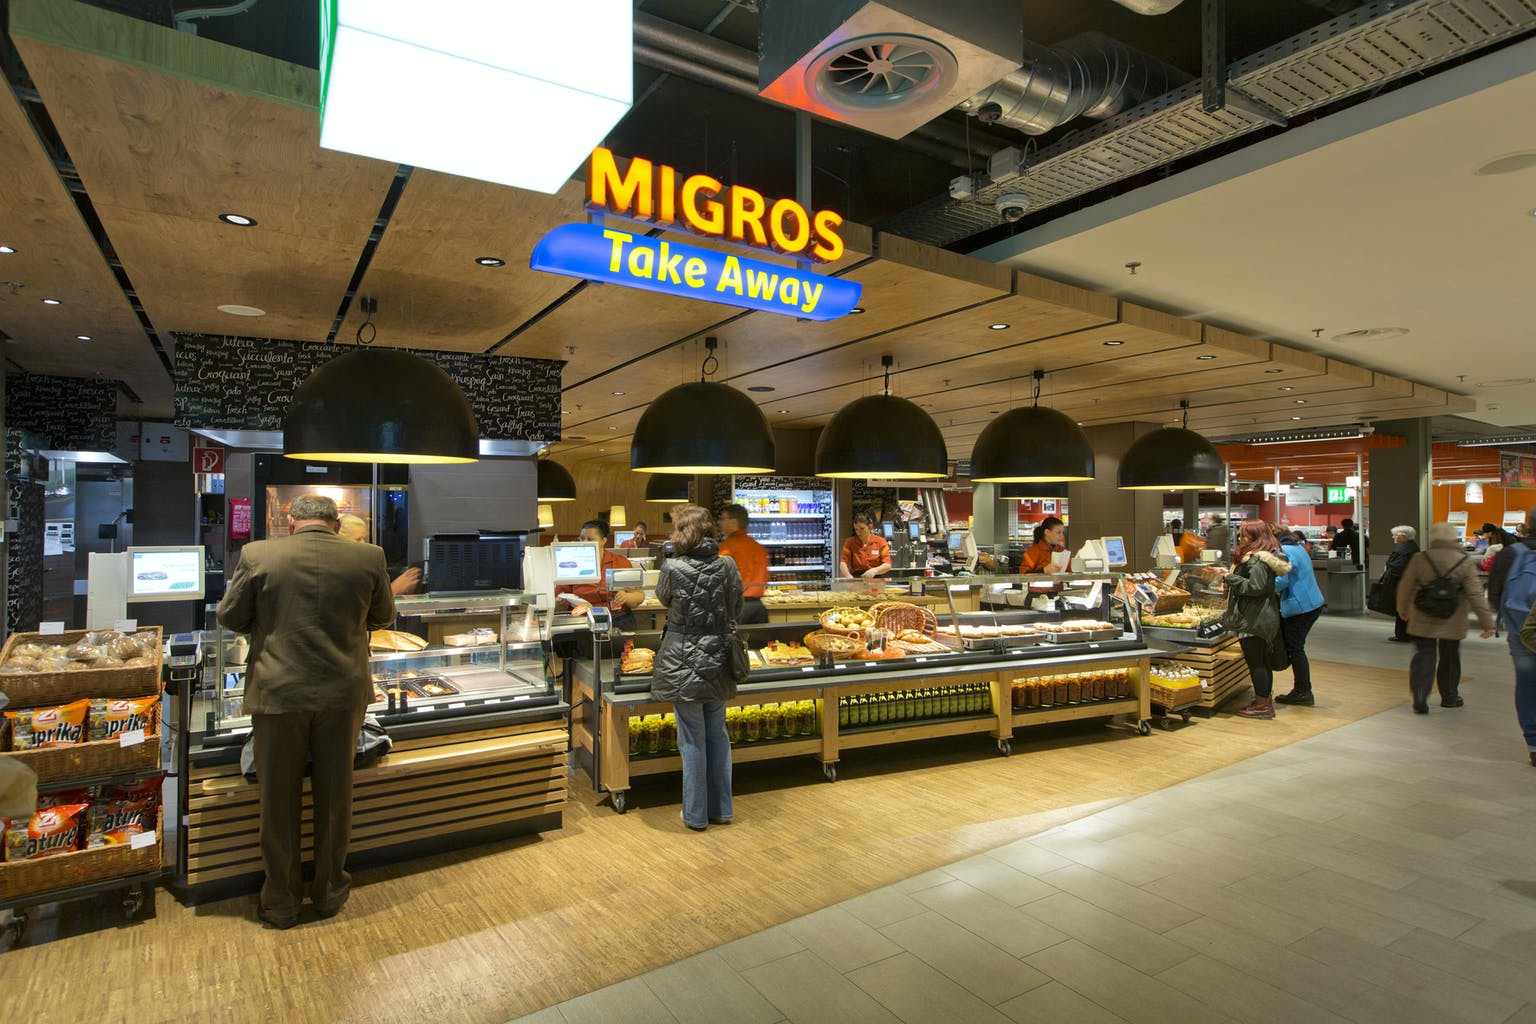 Ein Migros Take-Away Stand